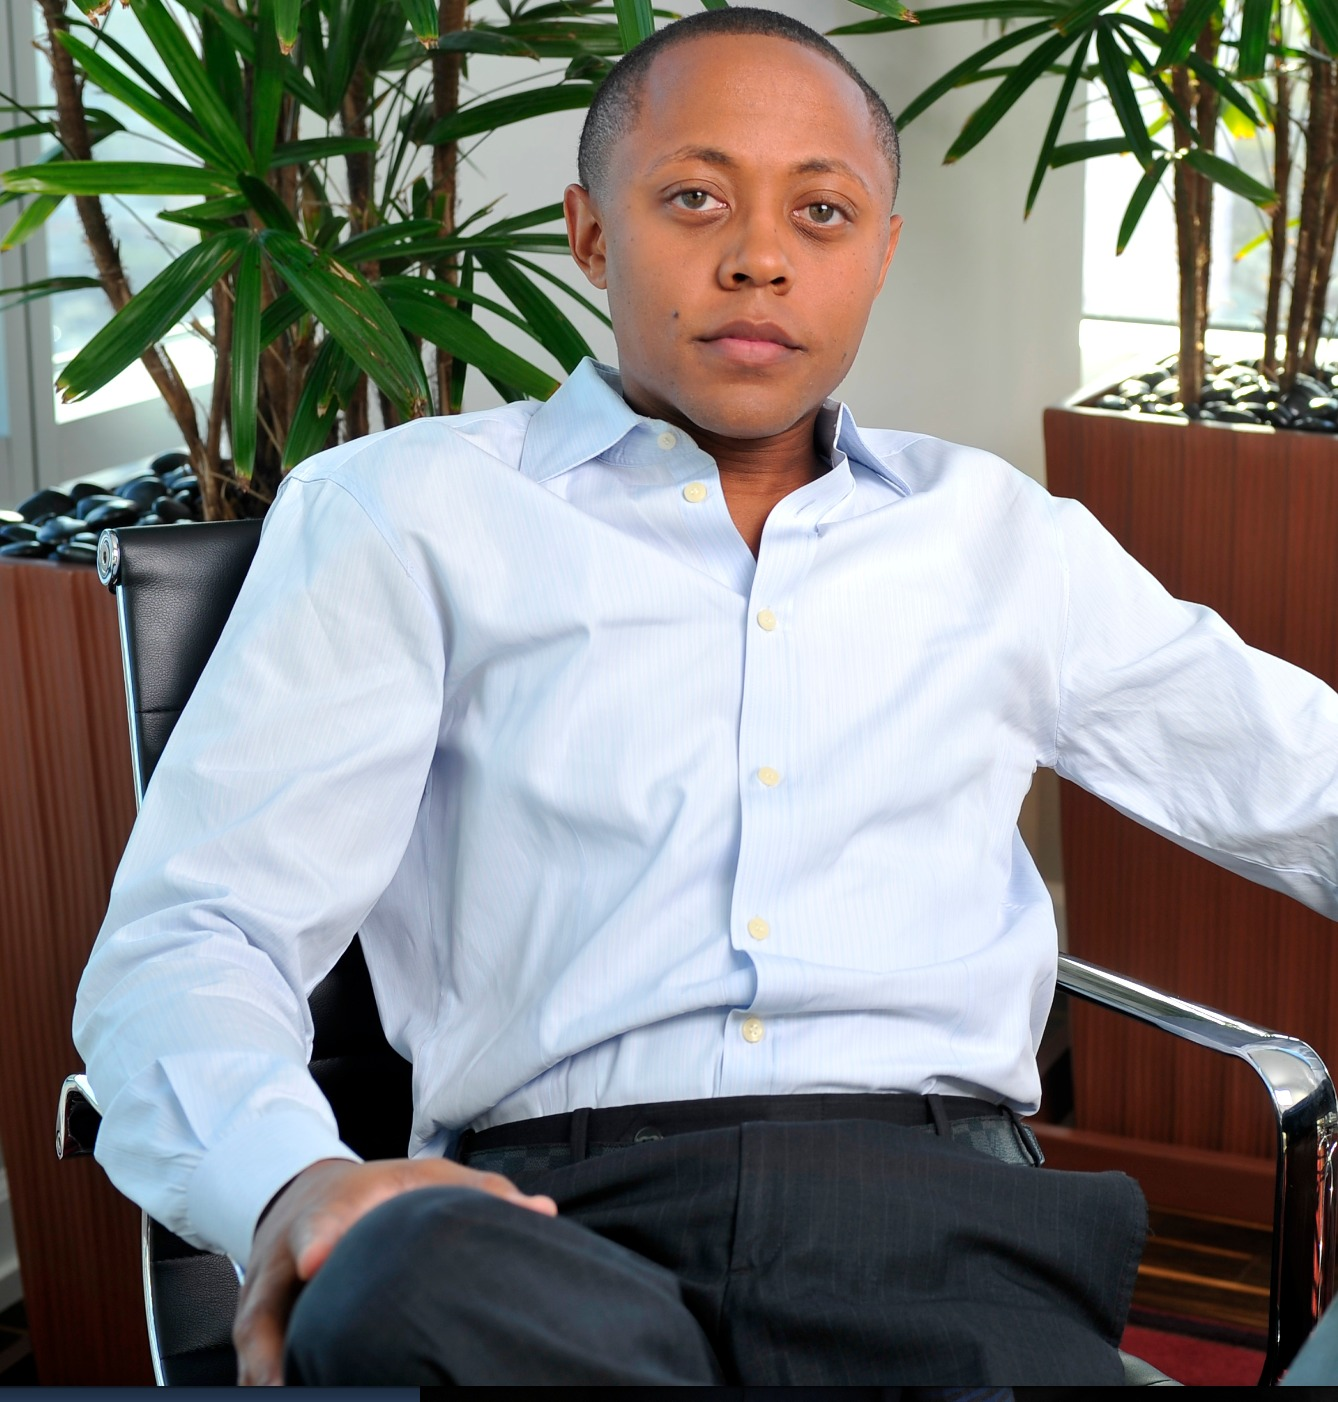 Walter Mosley - Los Angeles, CA    Attorney (Harvard Law) & Executive Producer (Rob & Chyna, The Amber Rose Show & more)